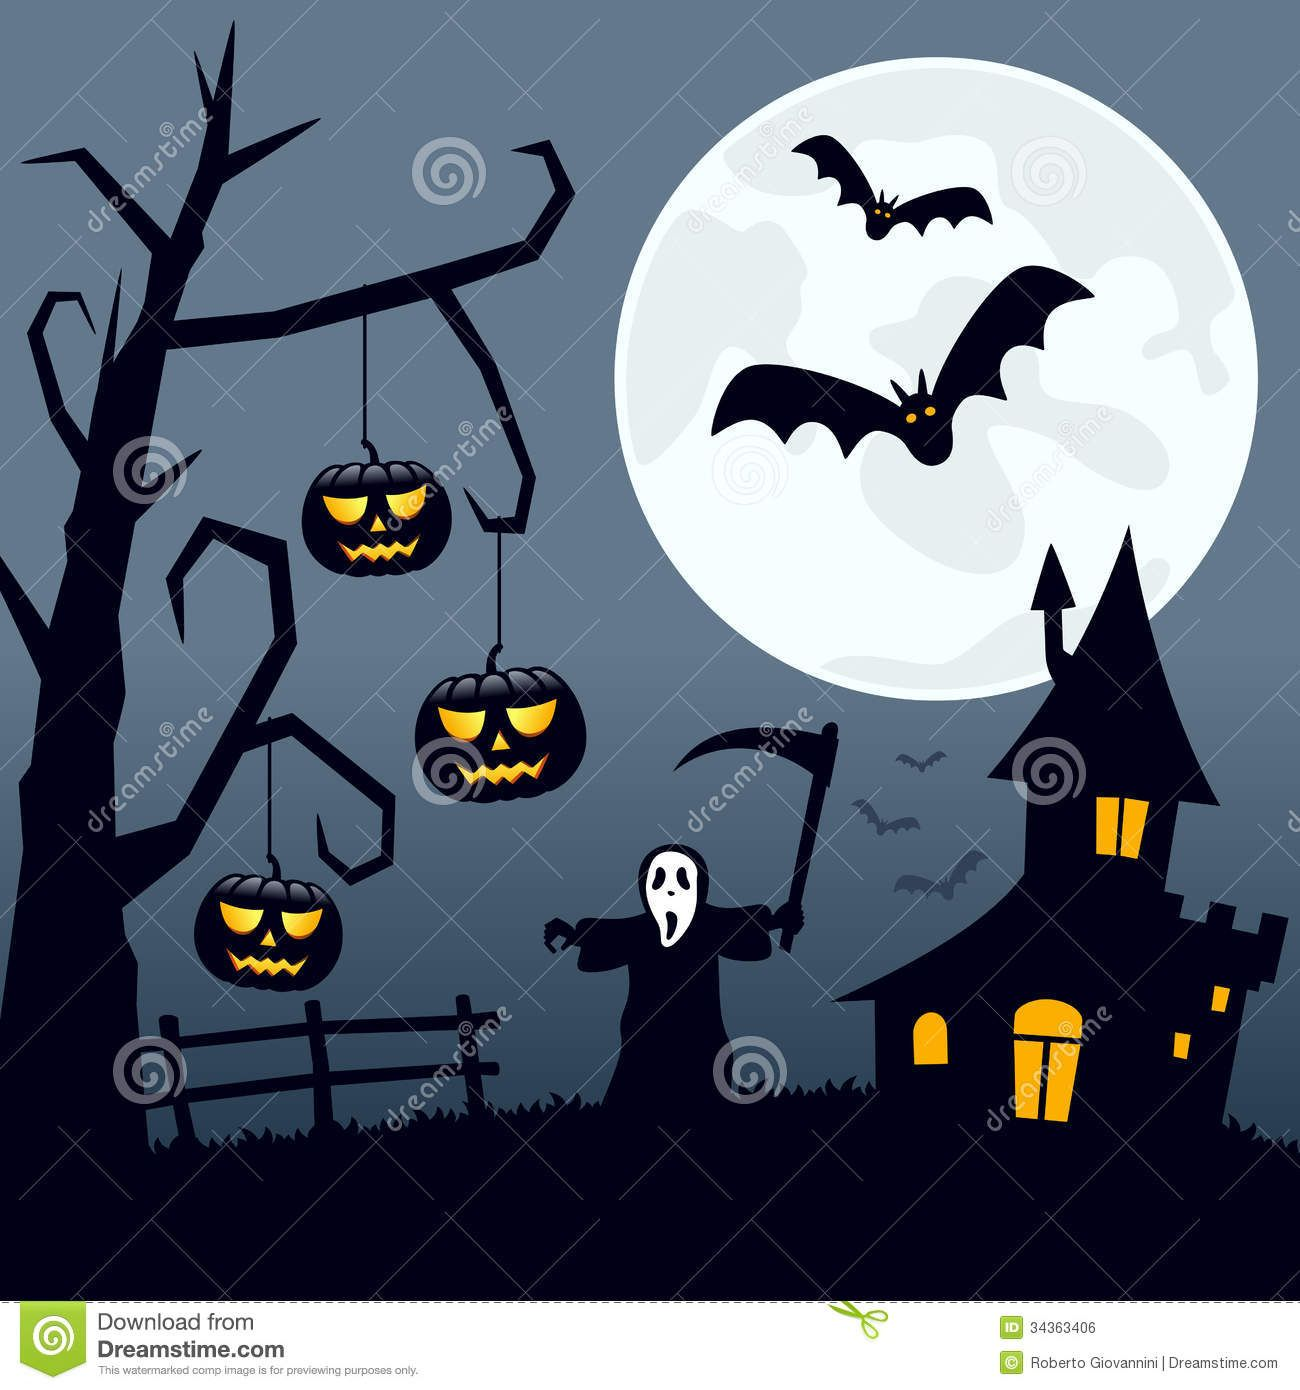 Halloween scary landscape night scene background moon over Haunted house drawing ideas